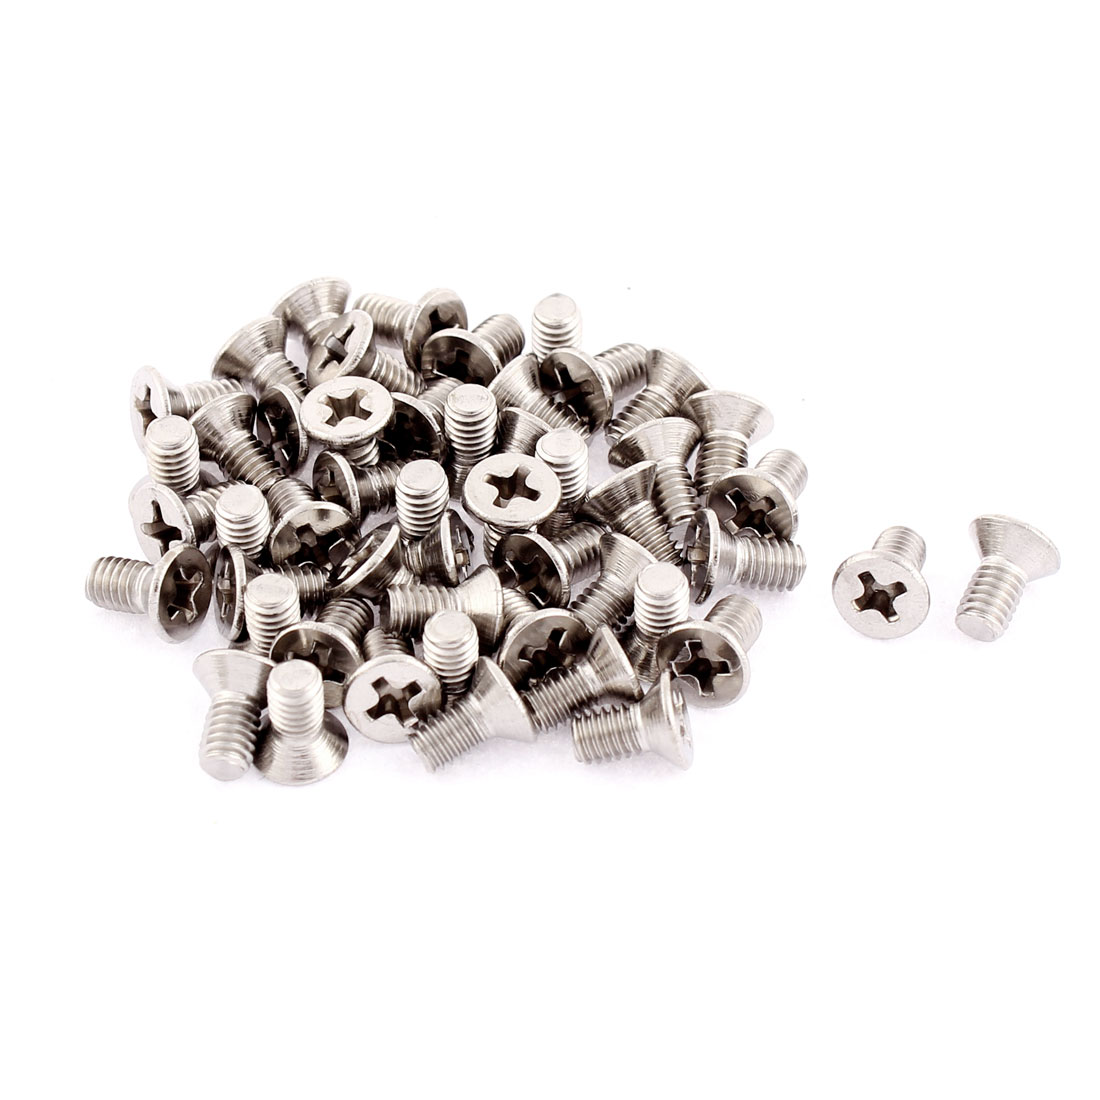 M4 x 8mm Phillips Flat Head Stainless Steel Countersunk Bolts Screws 50pcs